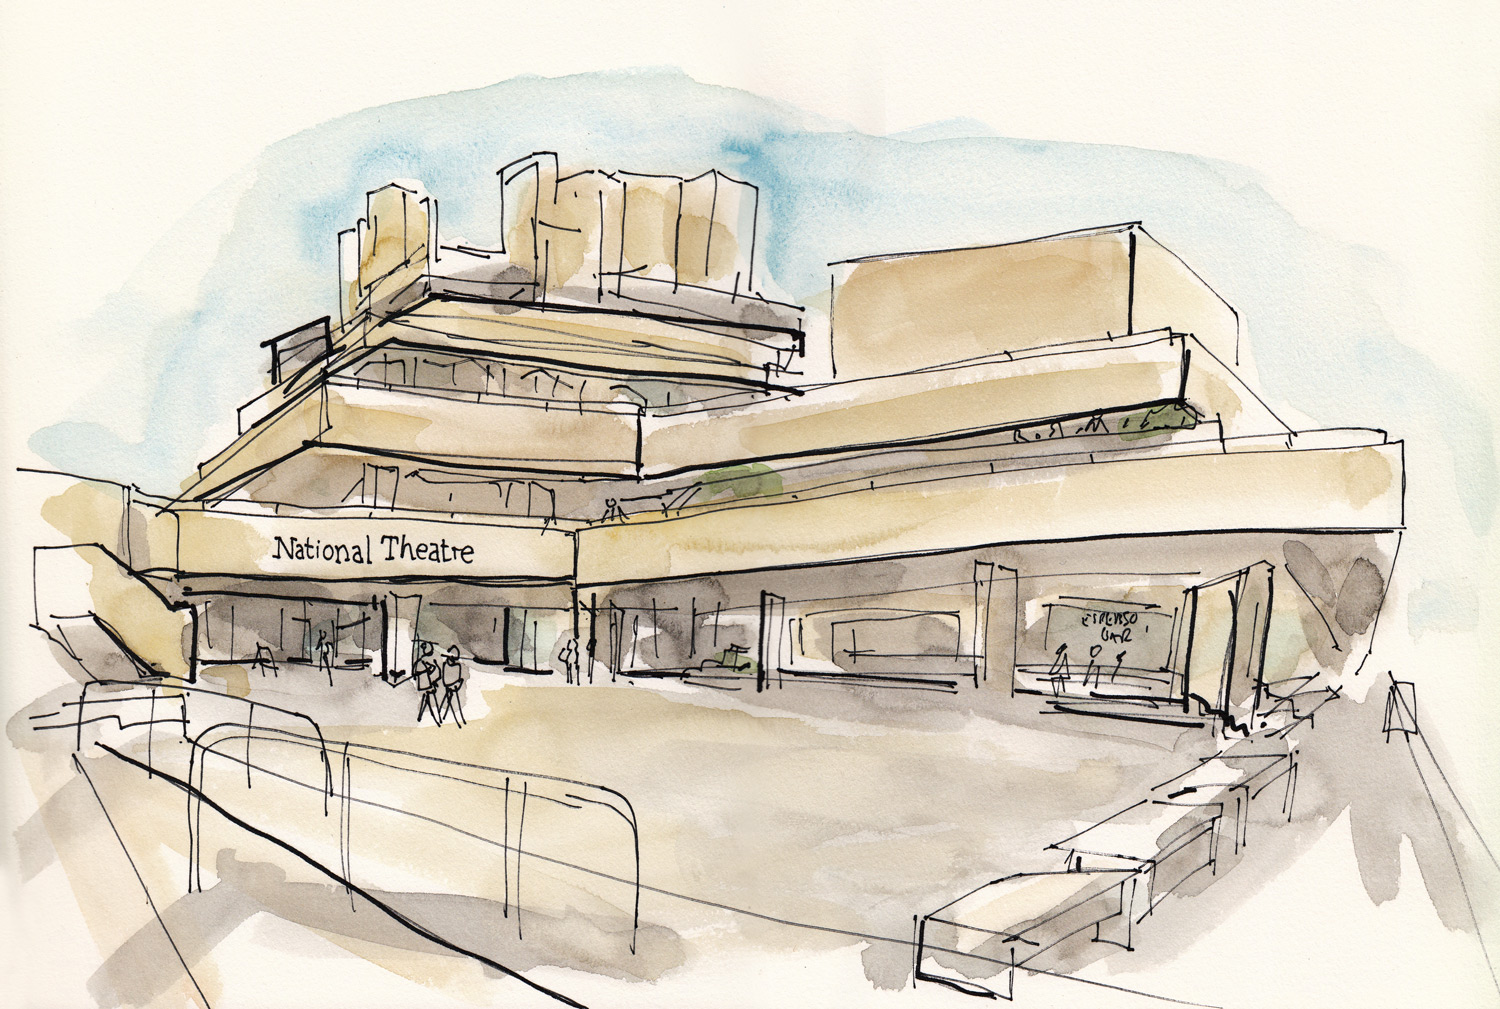 I've become a big fan of brutalist architecture over recent years. I love the shapes and spaces created.The National Theatre on Southbank is a great example. Fun to draw!